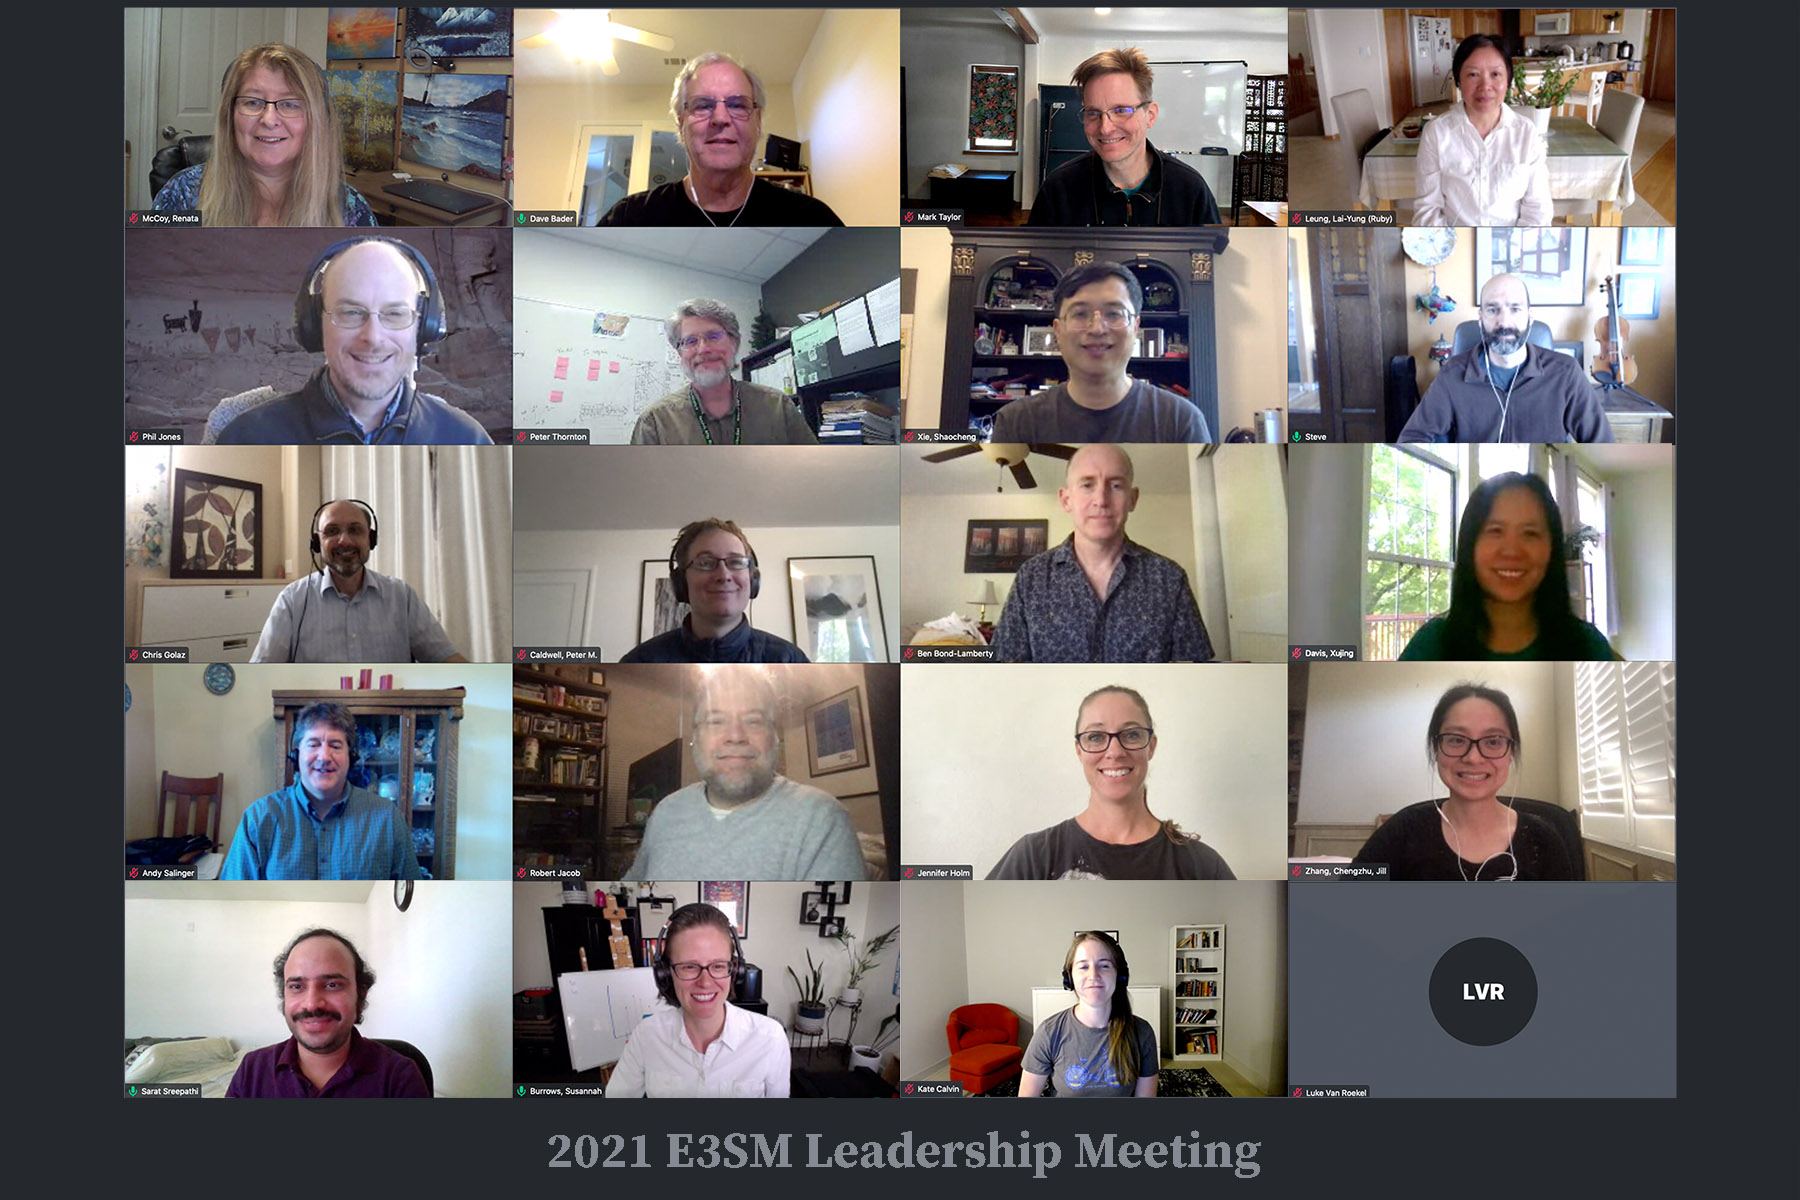 Group photo from the 2021 E3SM Leadership Meeting